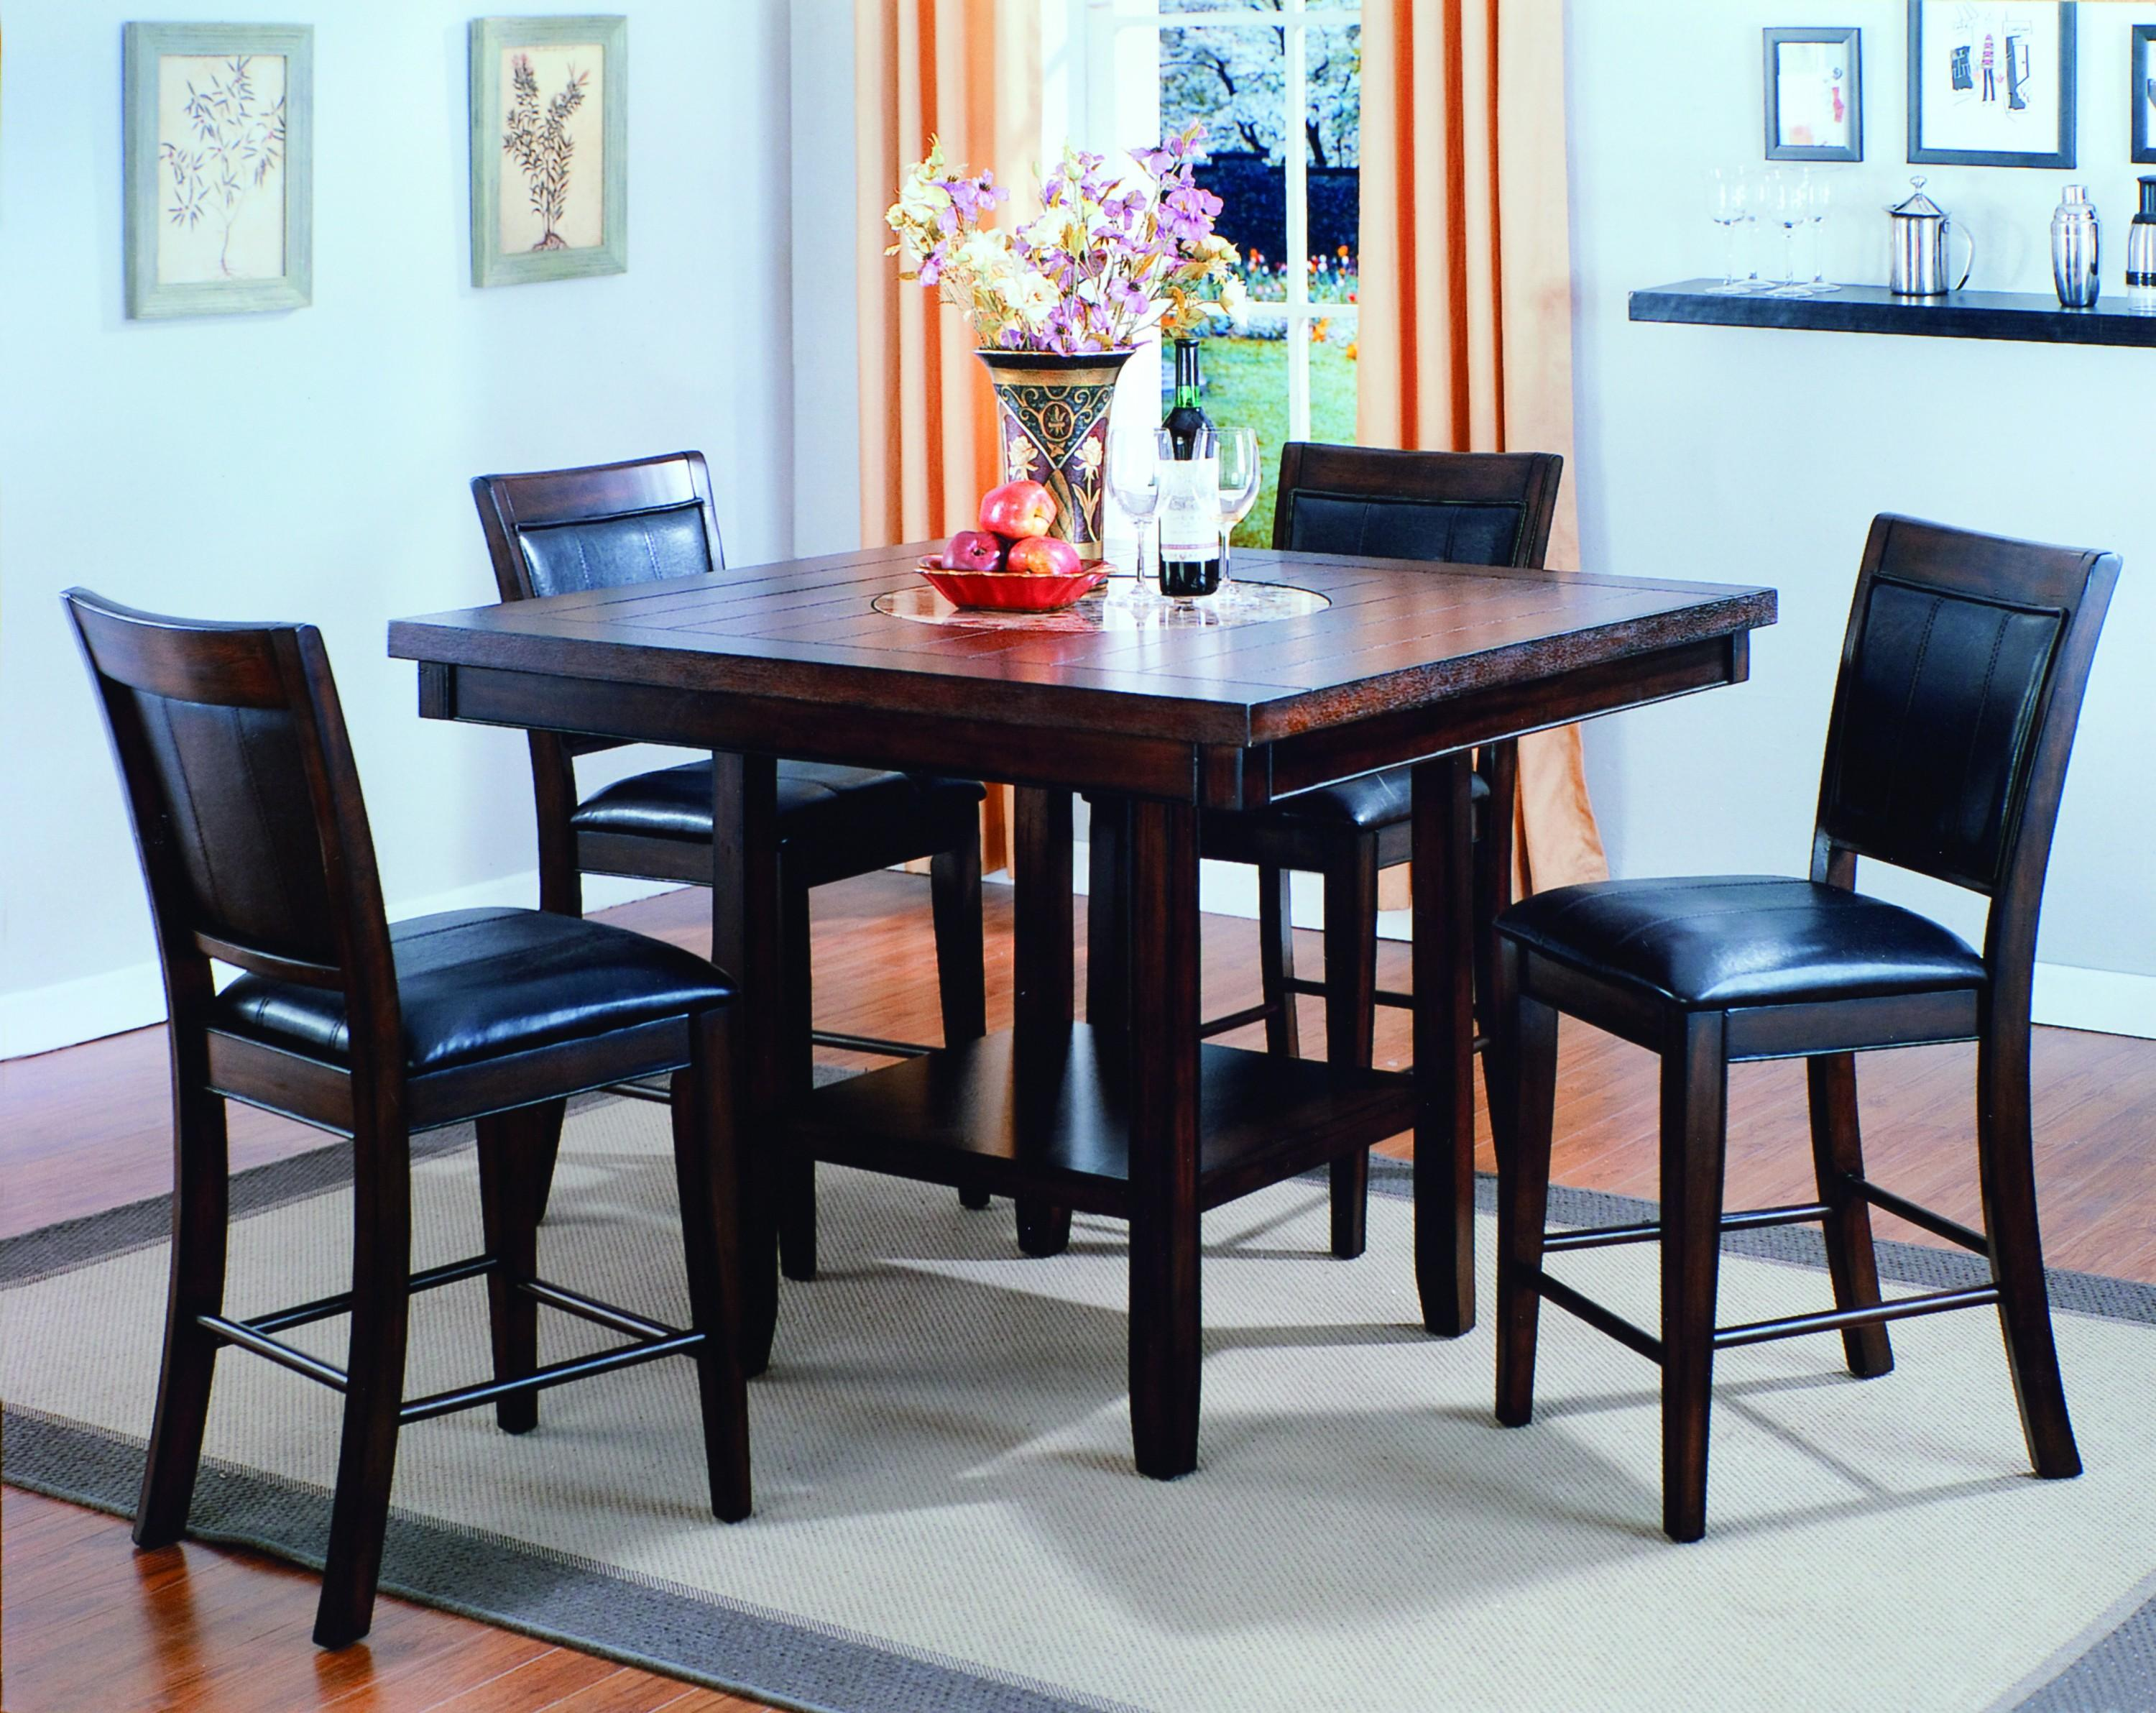 crown fulton chairs item table counter chair piece products royal b set mark height number tables and